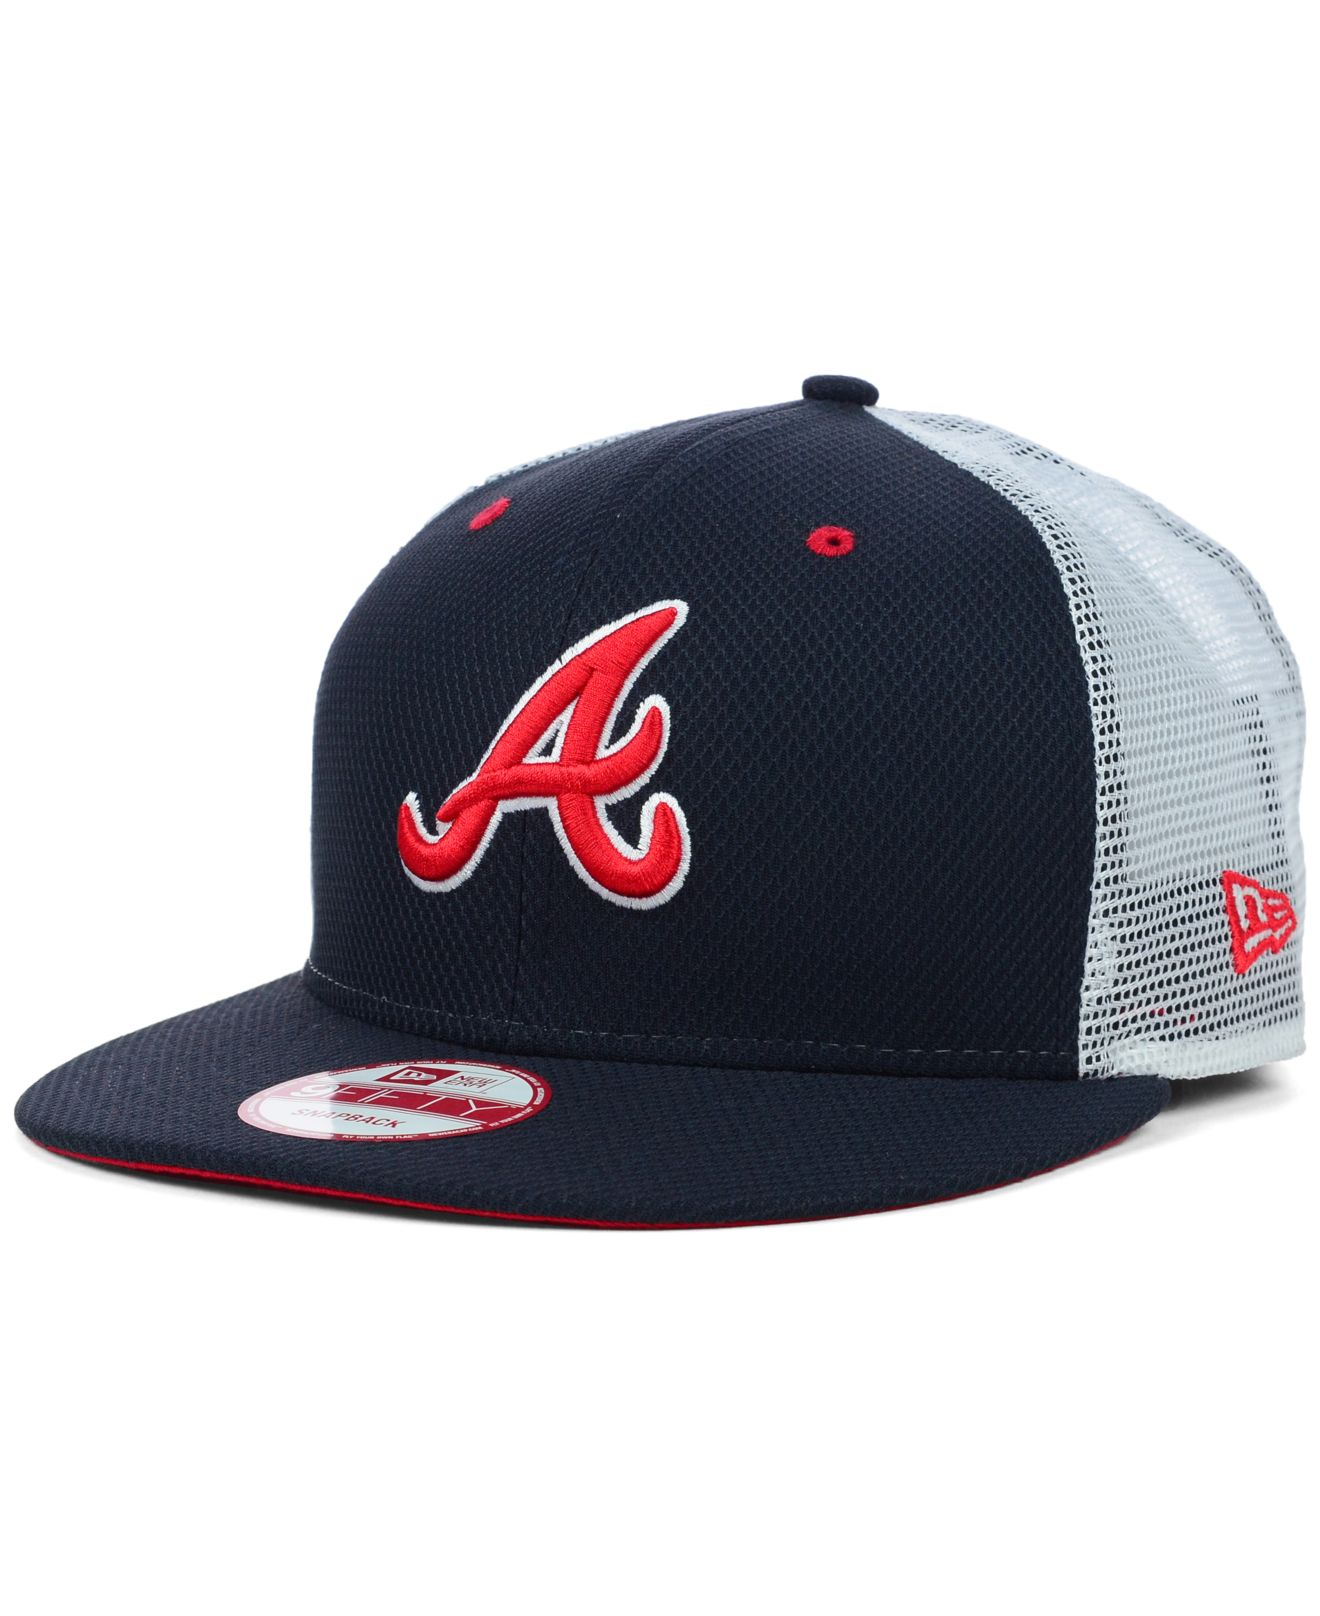 best authentic 56cf4 37cdf ... low cost lyst ktz atlanta braves mlb diamond mesh 9fifty snapback cap  in 0b361 ad94e